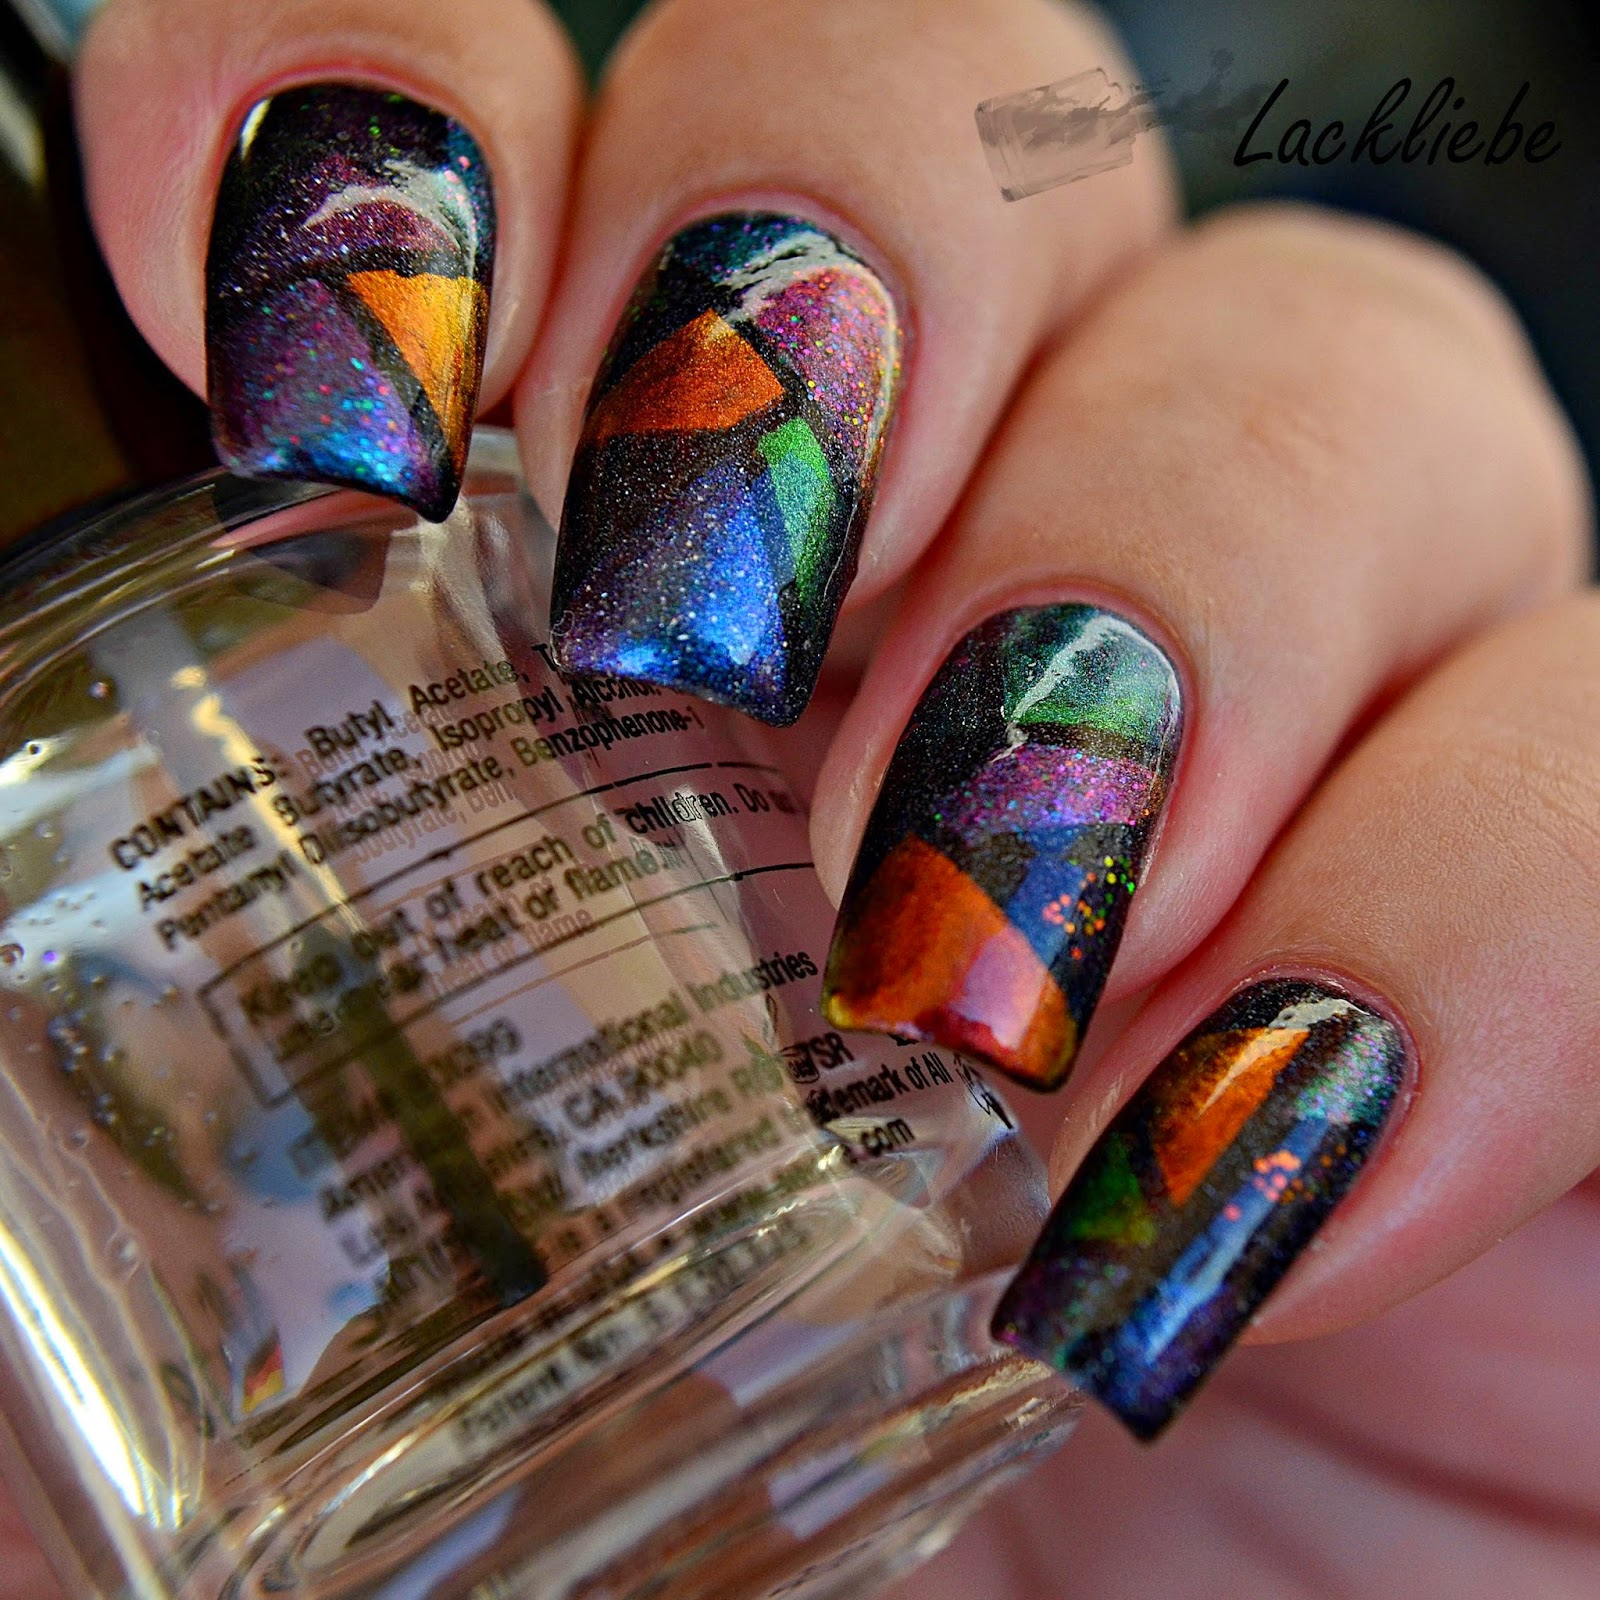 http://rainpow-nails.blogspot.de/2014/08/tape-month-magic-mosaic.html